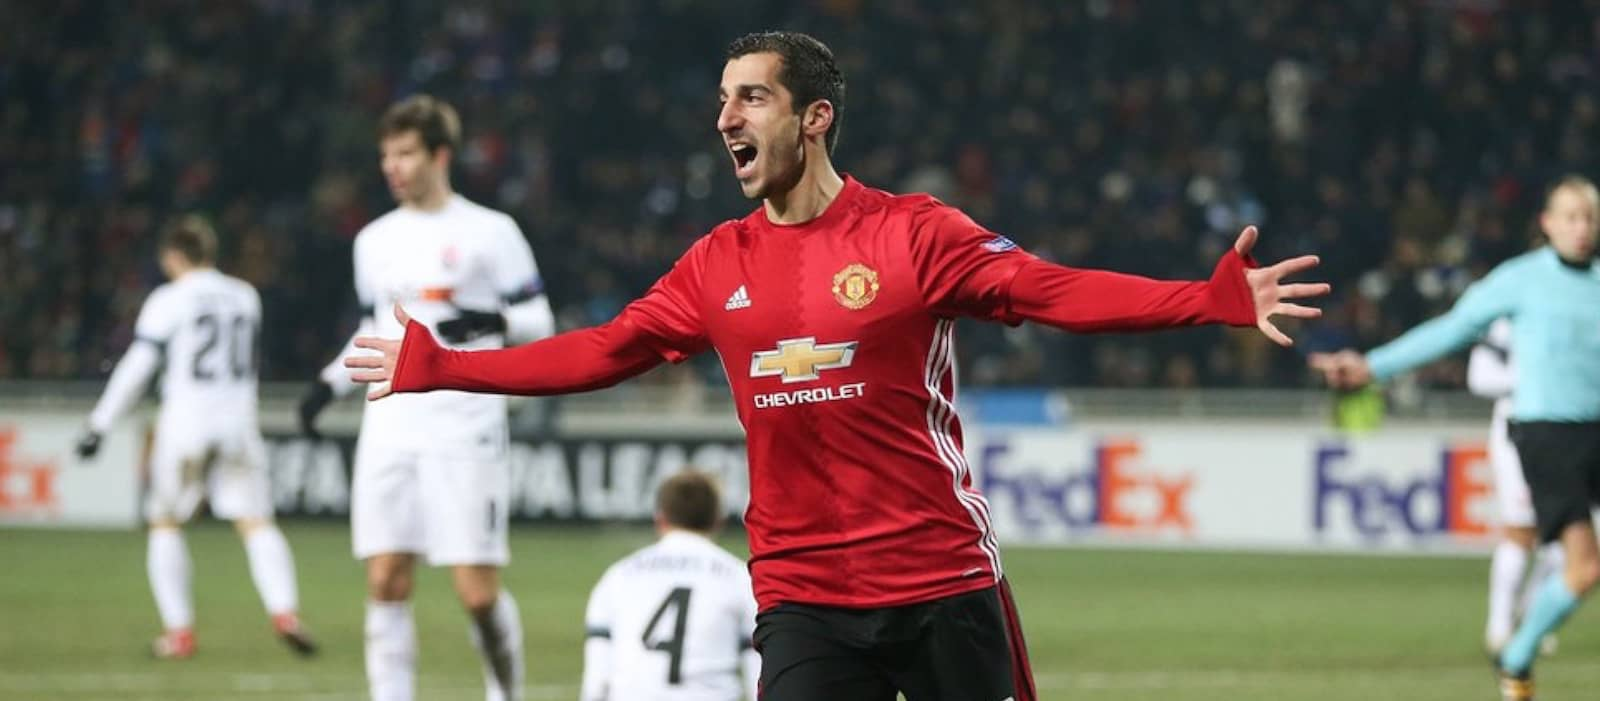 Ander Herrera: This is how Manchester United got the best out of Henrikh Mkhitaryan